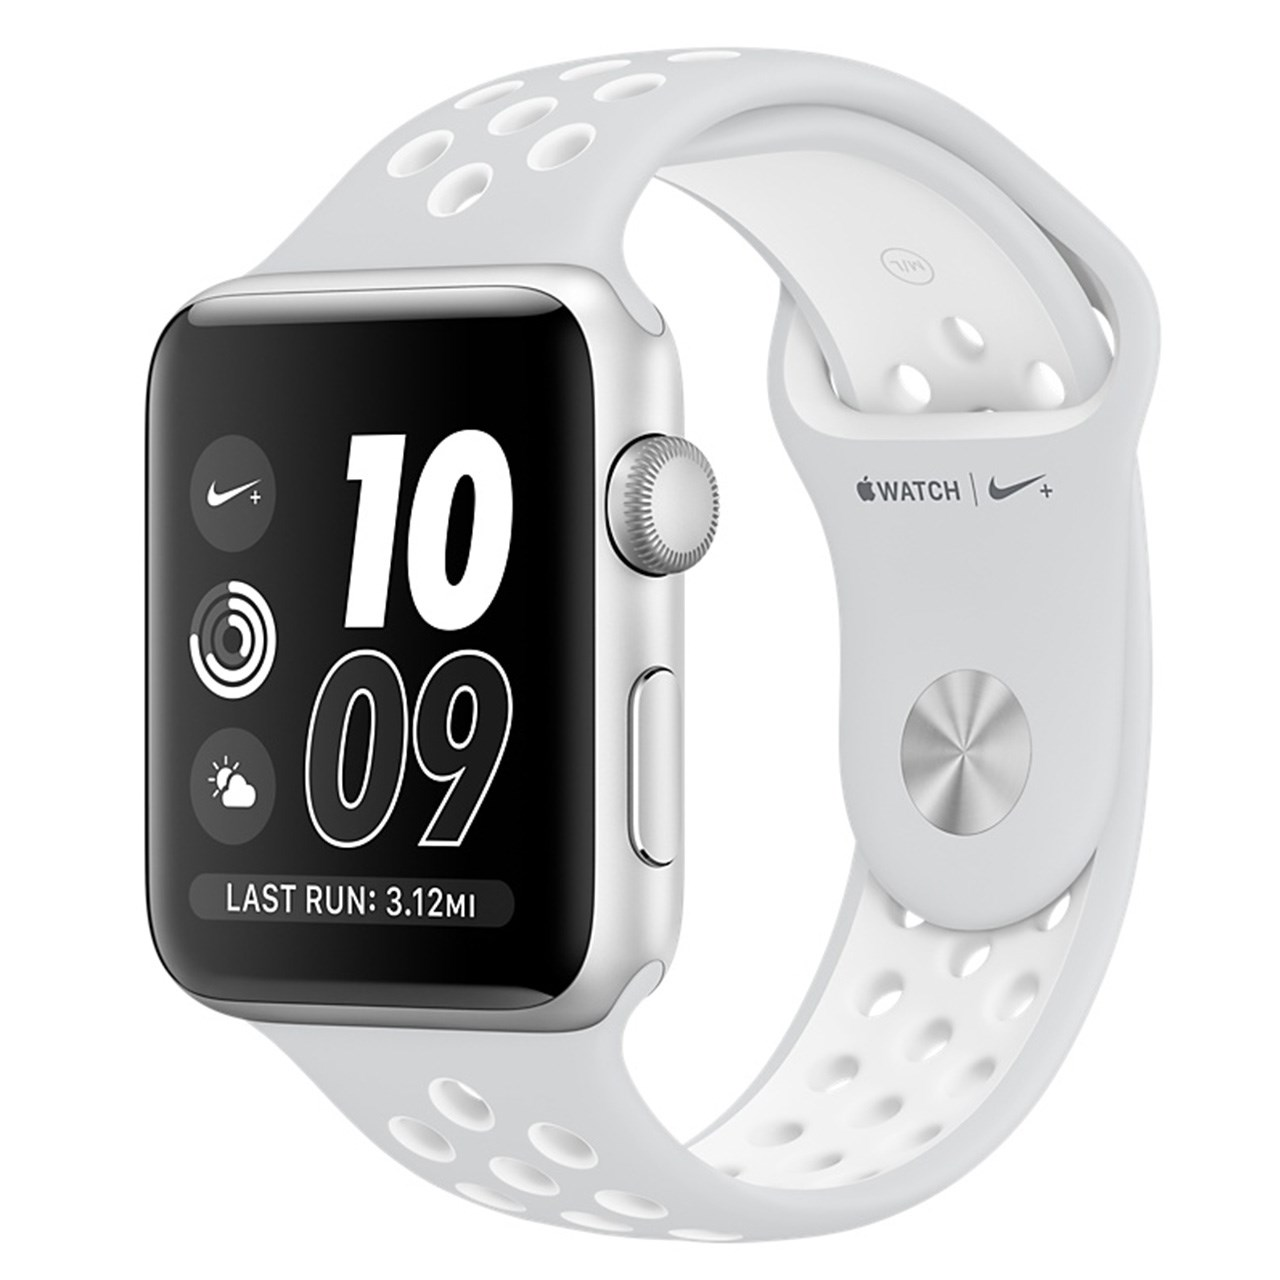 ساعت هوشمند اپل واچ سری 2 مدل Nike Plus 42mm Silver Aluminum Case with Pure Platinum/White Nike Sport Band